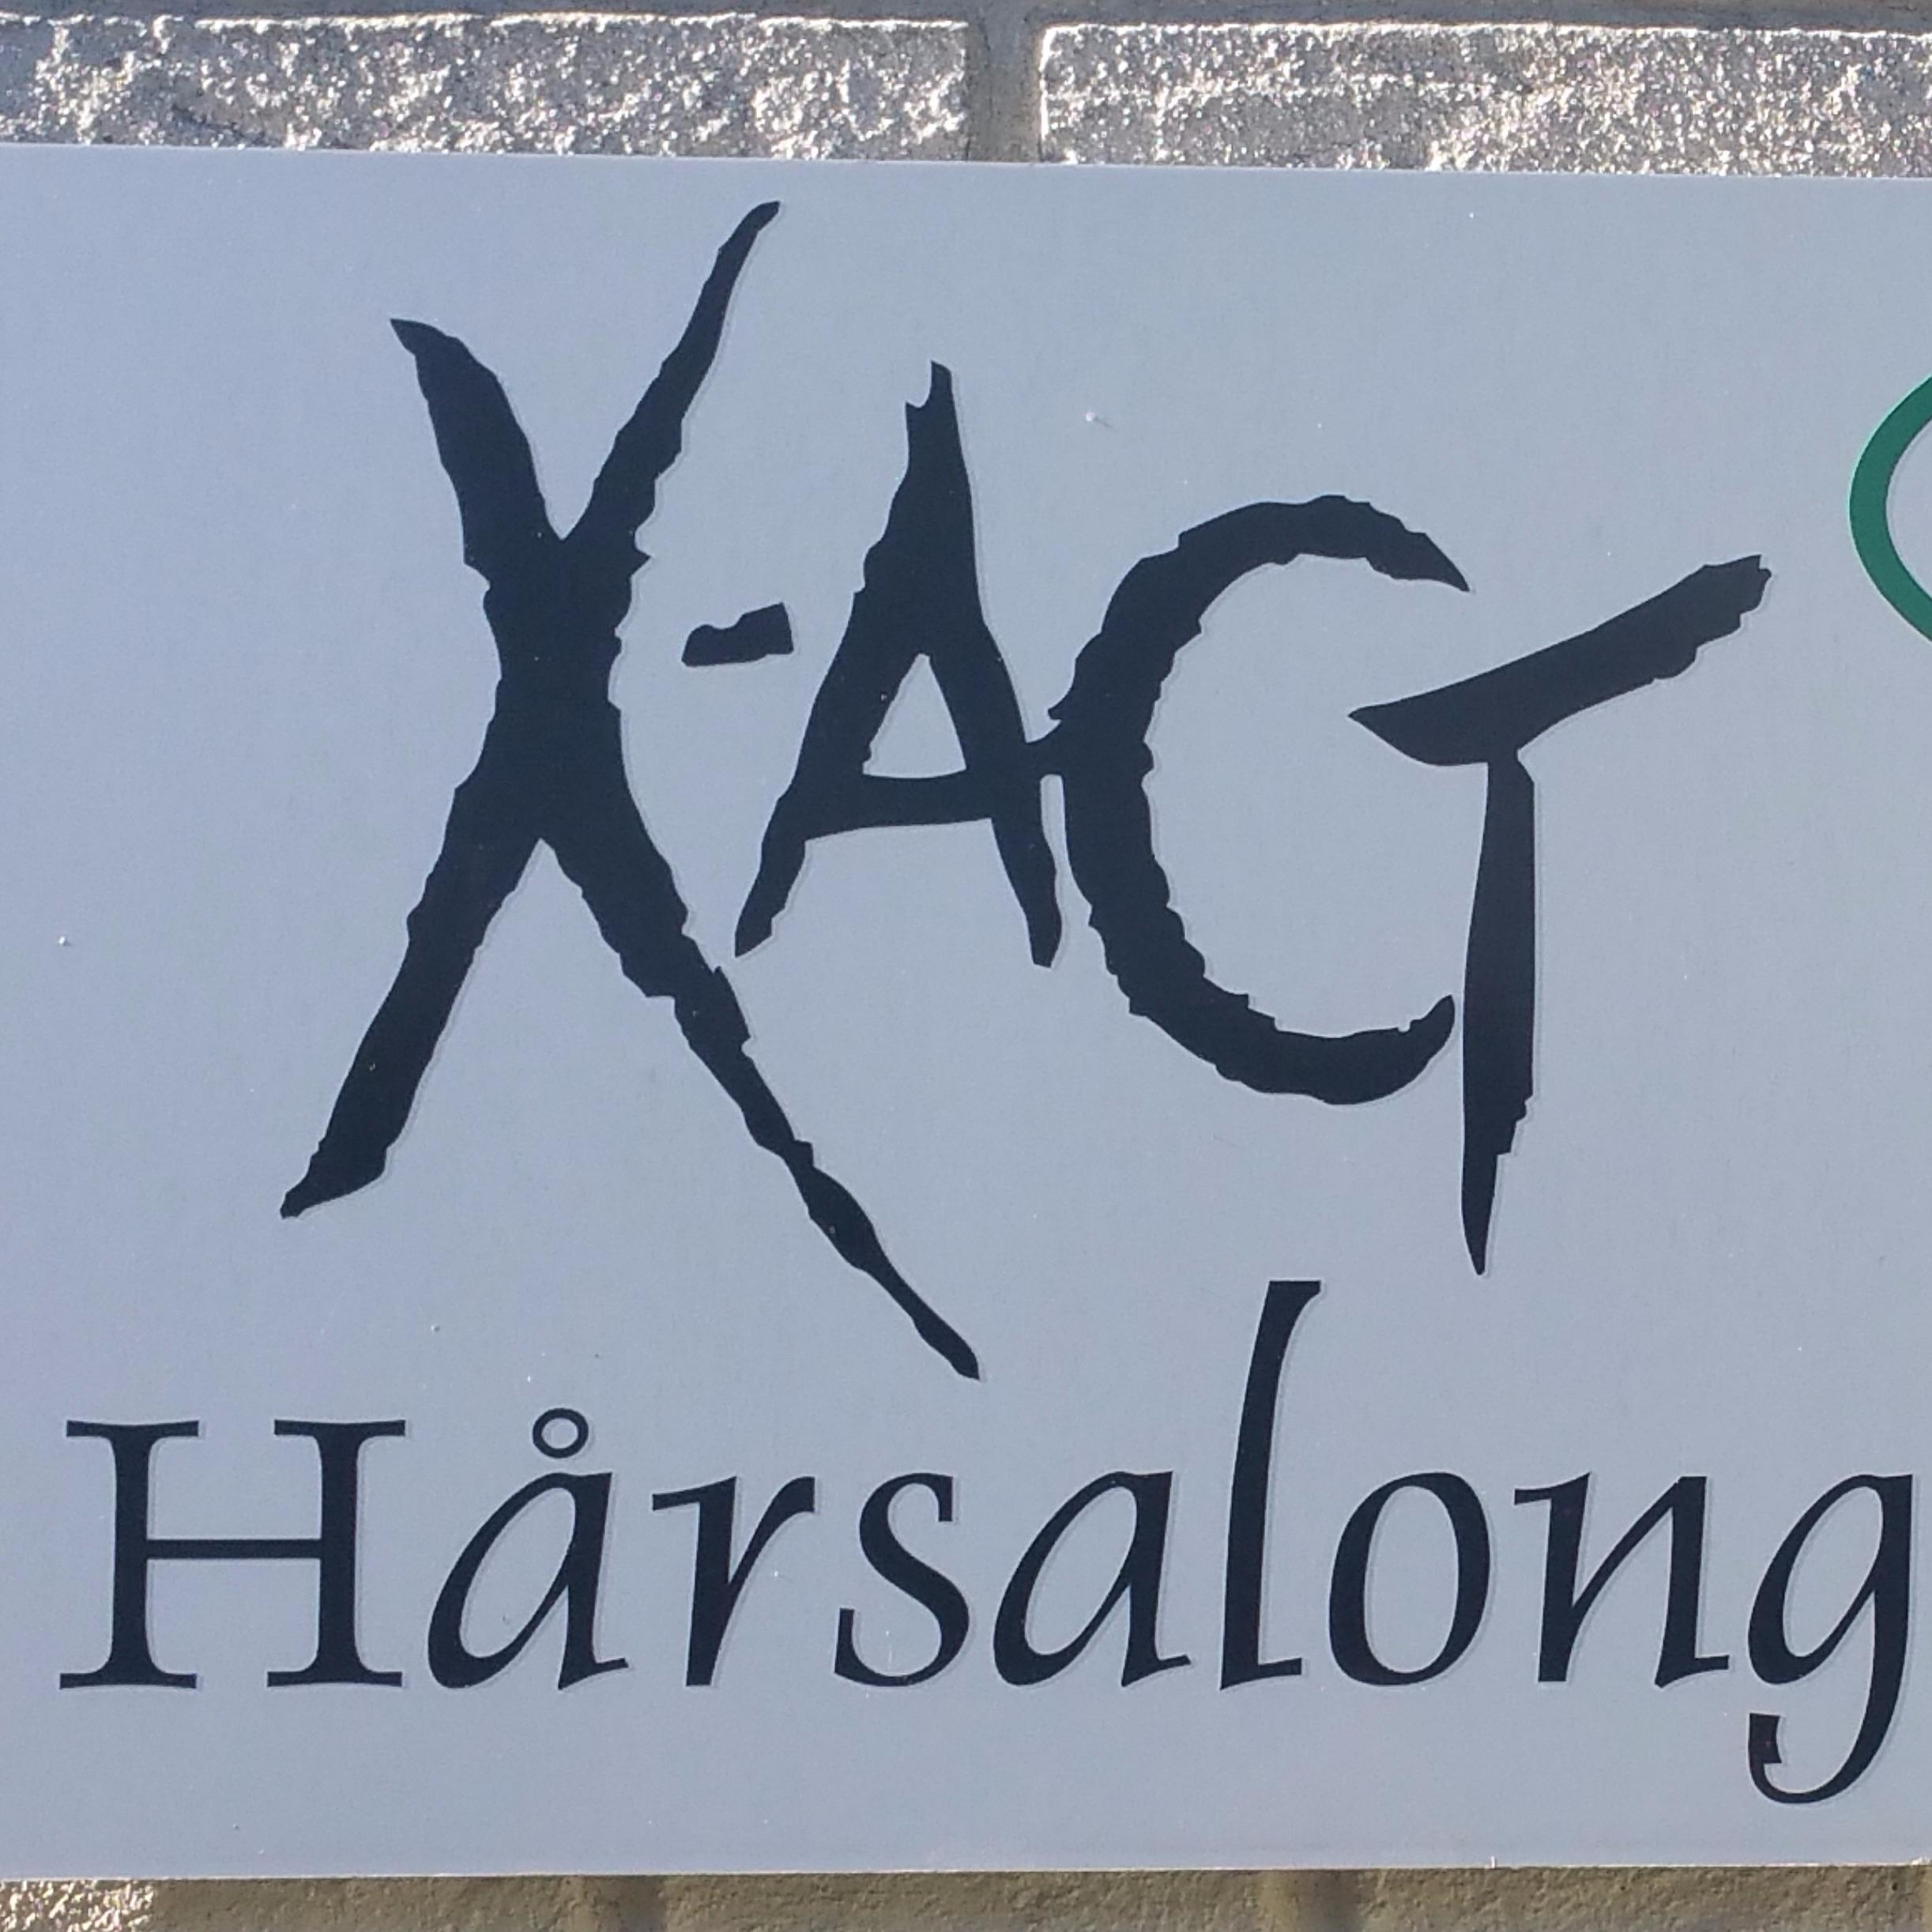 X-act Hårsalong